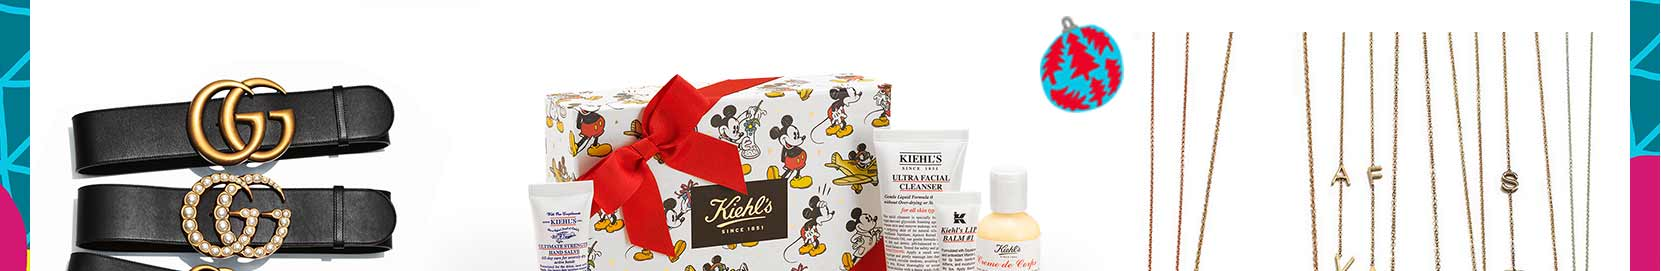 Gifting ideas with Gucci belts, personalized jewelry, and exclusive collections featuring Disney and Kiehl's